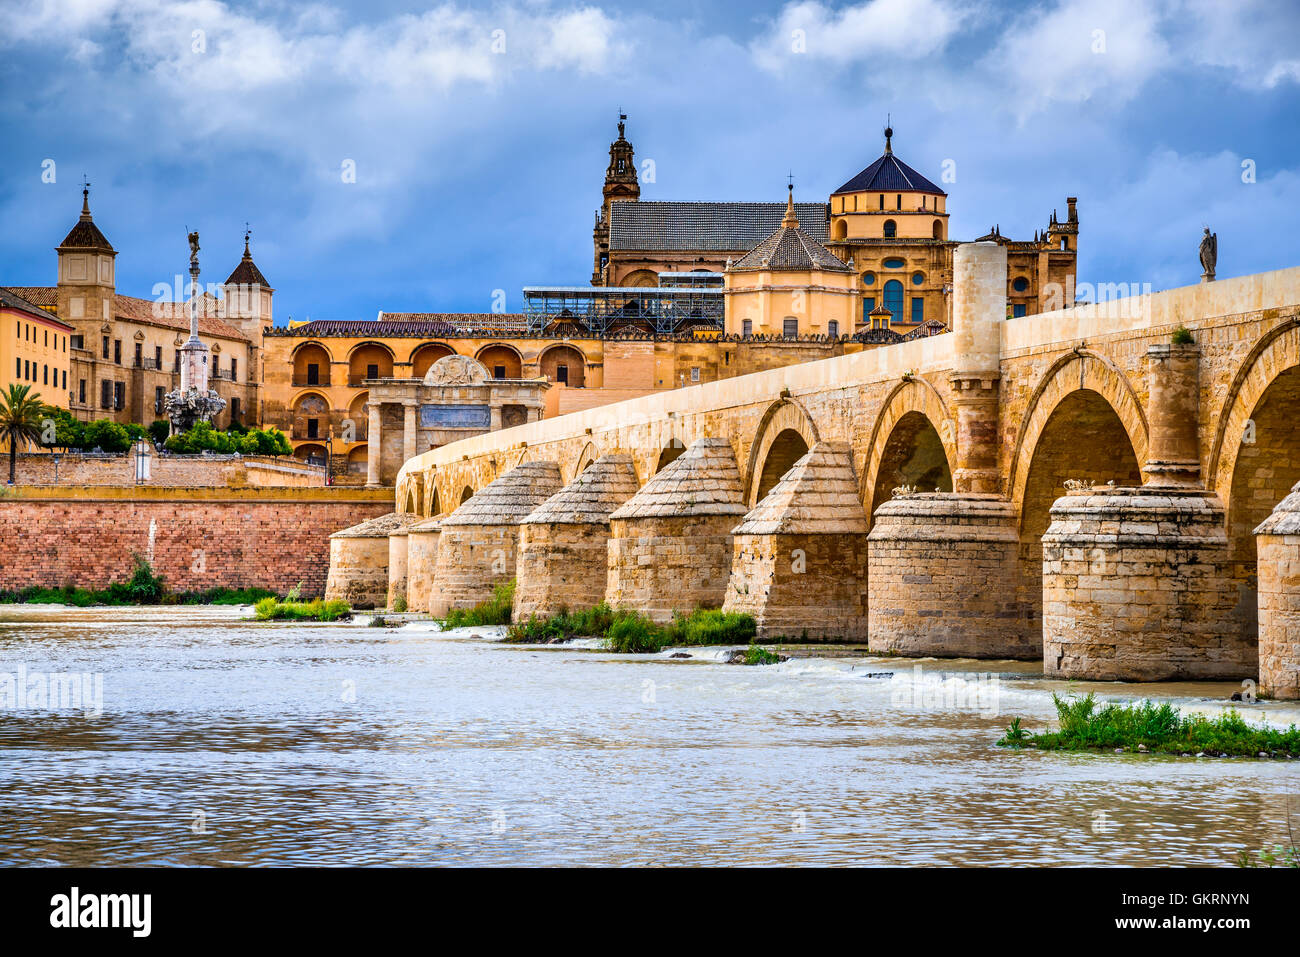 Cordoba, Spain, Andalusia. Roman Bridge on Guadalquivir river and The Great Mosque (Mezquita Cathedral). - Stock Image